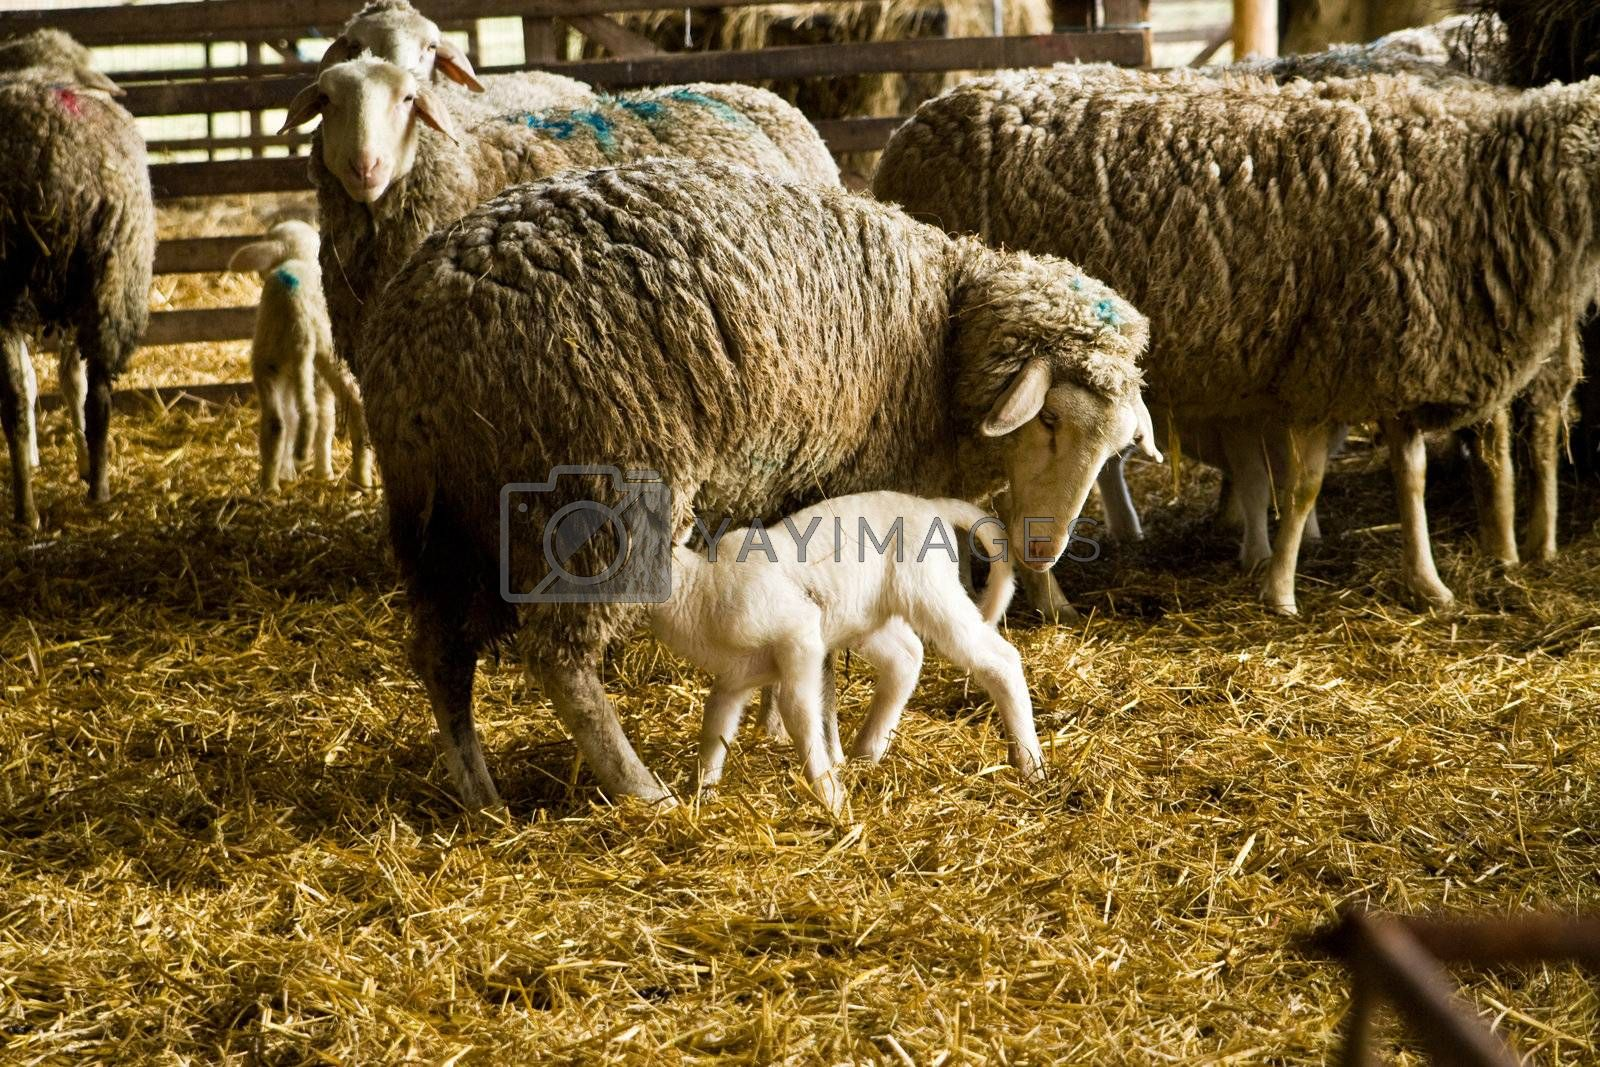 Royalty free image of sheeps with lamb by Copit